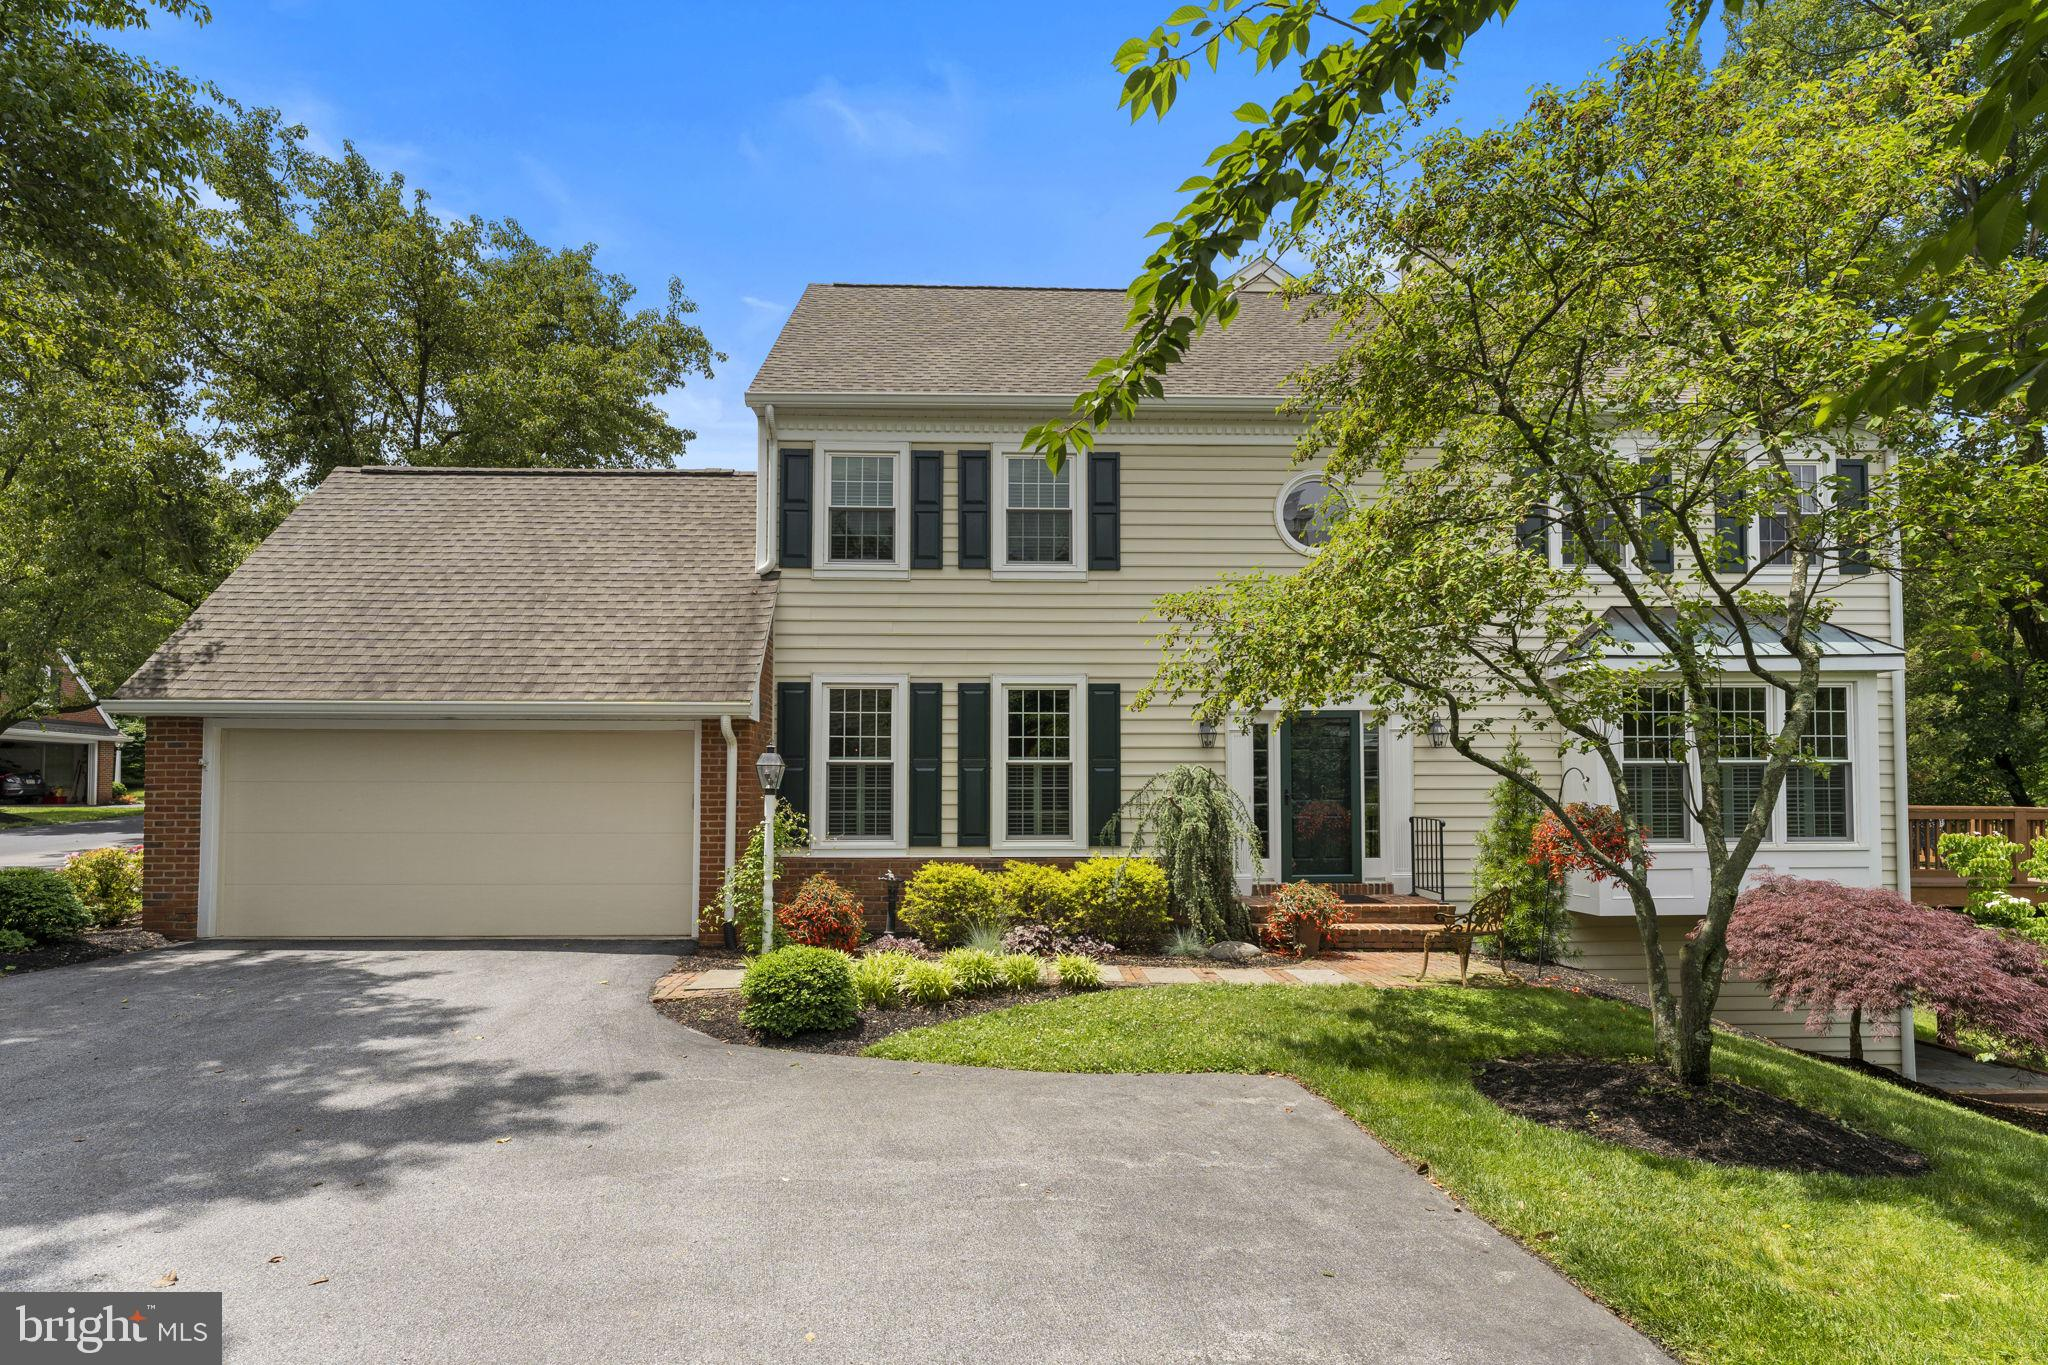 *Showings to begin on Tuesday 6/8* Welcome to 133 Carters Grove! This beautiful end-unit in desirable Tidewater has been lovingly maintained and updated by the current owners. Enter into the two-story foyer and notice the warm hardwood floors extending throughout the first floor. On your right is the formal living room with crown molding and plantation shutters, centered around the double-sided gas fireplace with a beautiful mantlepiece. On your left is the formal dining room with crown molding, chair rail and access to the kitchen for easy entertaining. As you make your way to the back of the house, you're greeted by the inviting family room with access to the double-sided gas fireplace that has an elegant stone hearth and wood mantle. The private deck overlooking community open space and Malvern Memorial Park is accessible via sliding glass doors. Adjacent to the family room is the eat-in kitchen with stainless appliances -including a conduction cooktop – island workspace with seating for four or more, granite countertops, tile backsplash and under cabinet lighting. There are two pantries for ample storage plus a pass through to the den to create an open, airy feeling. The eating area looks out over the front paver patio that's accessible via another sliding glass door. The two-car garage is also accessible for easy in and out with groceries and packages. Above the garage there is attic storage that can be accessed by pull down stairs. There is also an updated half bathroom off of the foyer. Upstairs, you'll find the lovely master suite. Through the double doors is a spacious bedroom with plenty of room for a king bed plus a sitting area. There is crown molding, ceiling fan and room darkening curtains. There are two walk-in closets each with a custom organizer system. The private master bath is beautifully updated in soft grays and whites with herringbone tile floors, a huge double vanity with a storage tower, plus linen storage and individual lighted mirrors. The